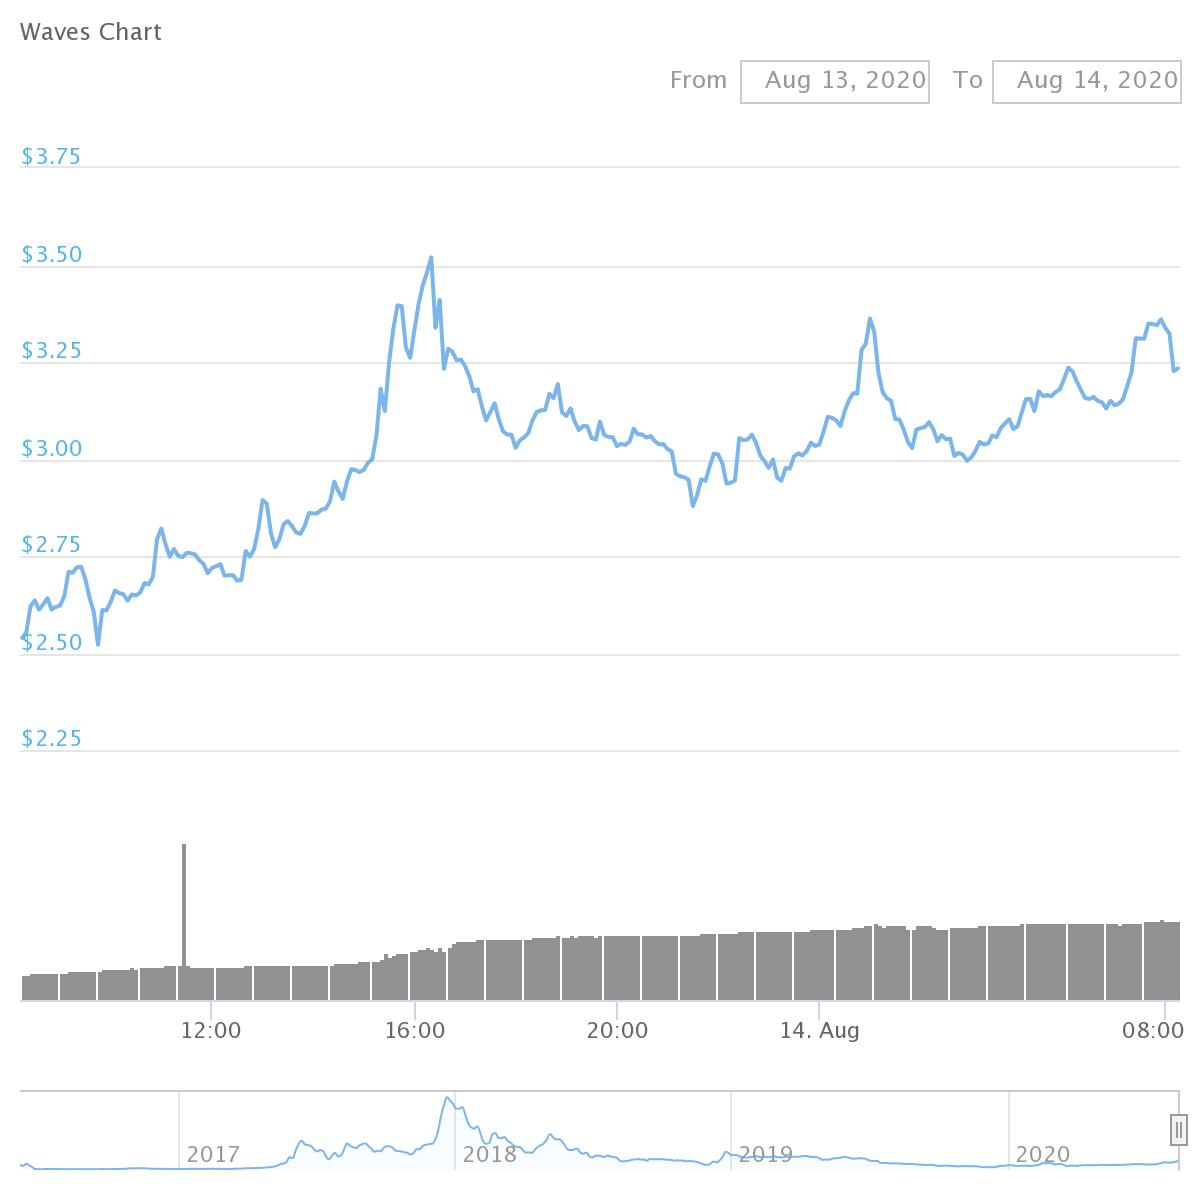 Waves (WAVES 25.4% Up):